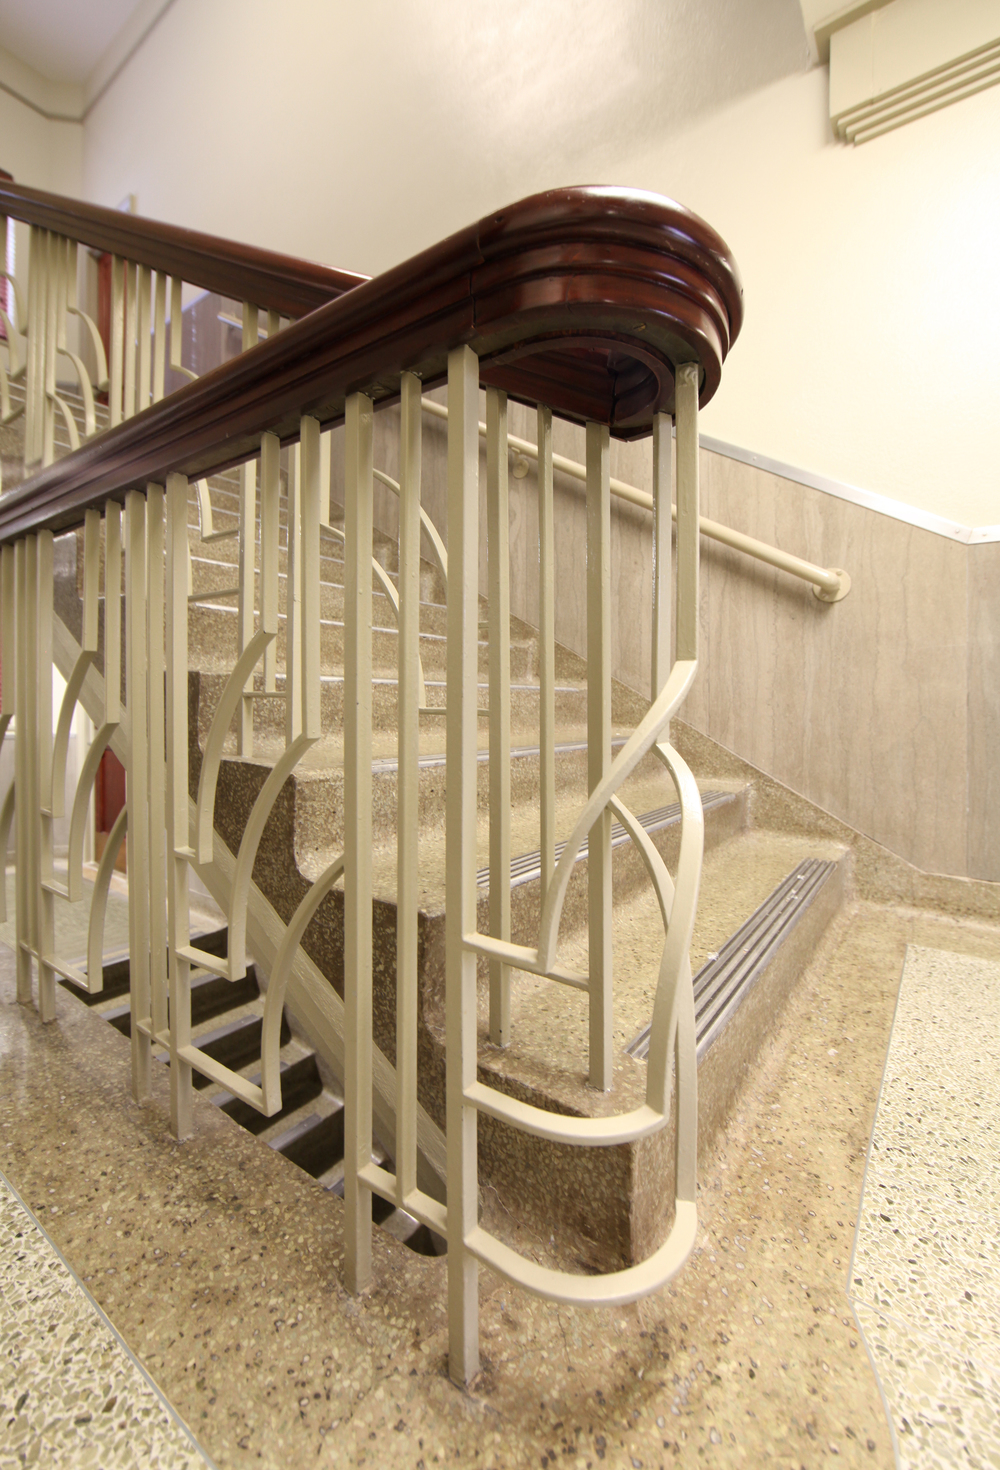 9 council chambers stair 1253.jpg